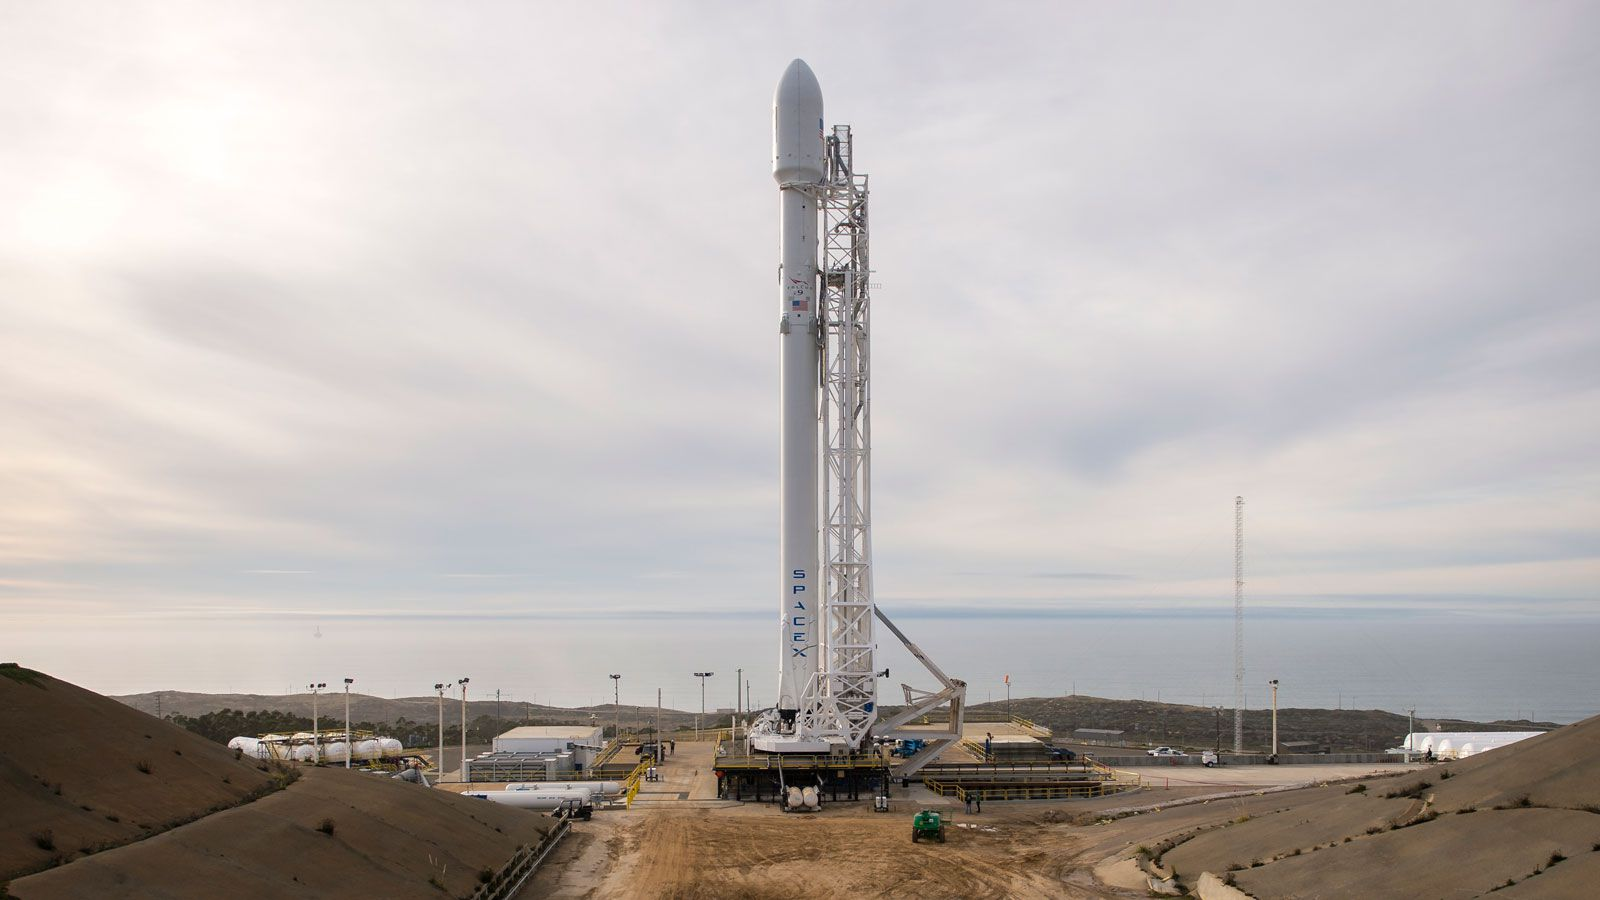 SpaceX says it can continue launching Falcon 9 rockets from two other launch pads